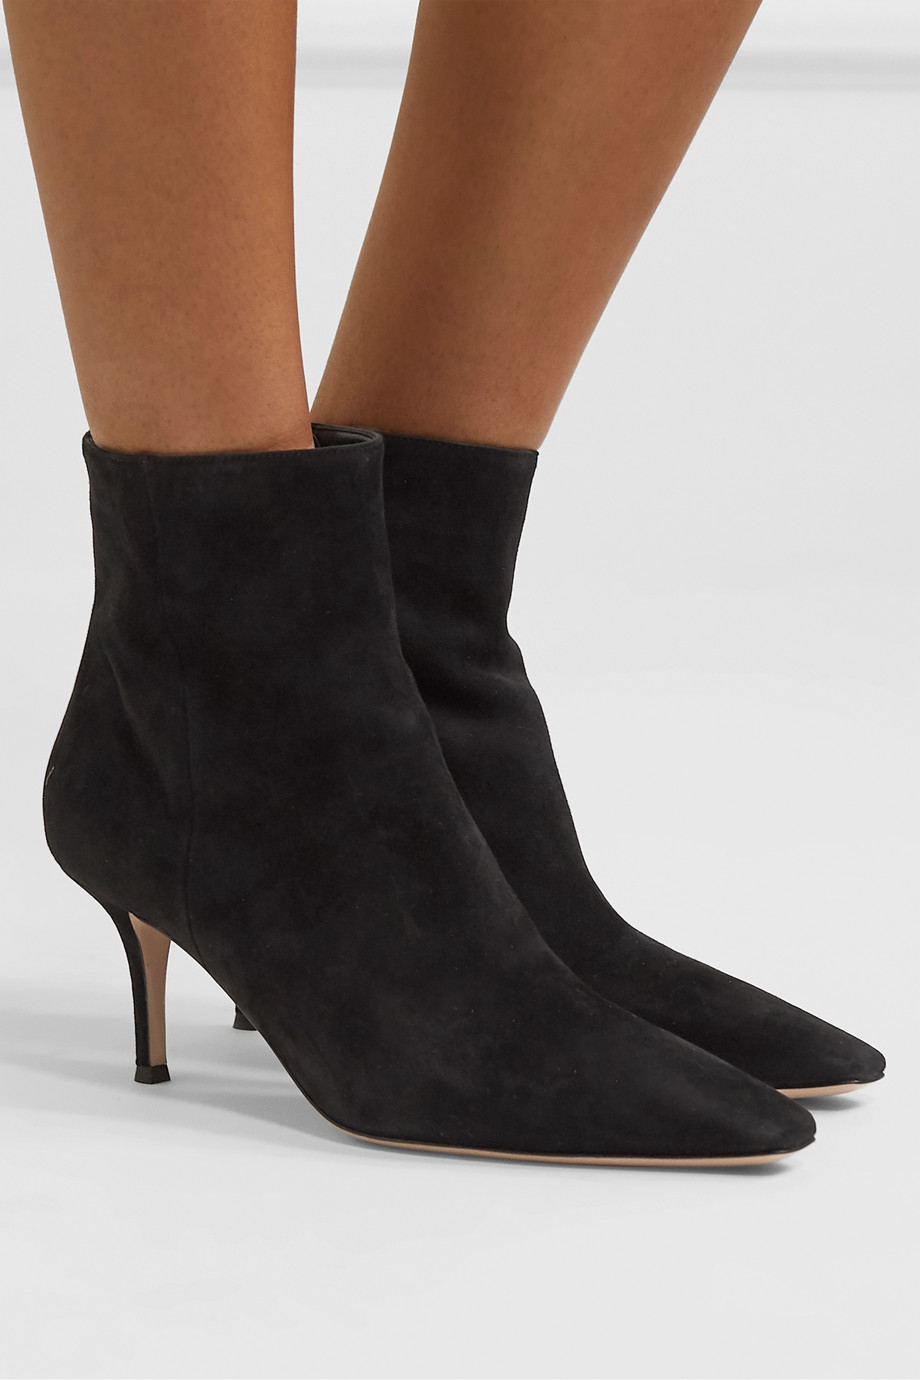 Gianvito Rossi 70 suede ankle boots